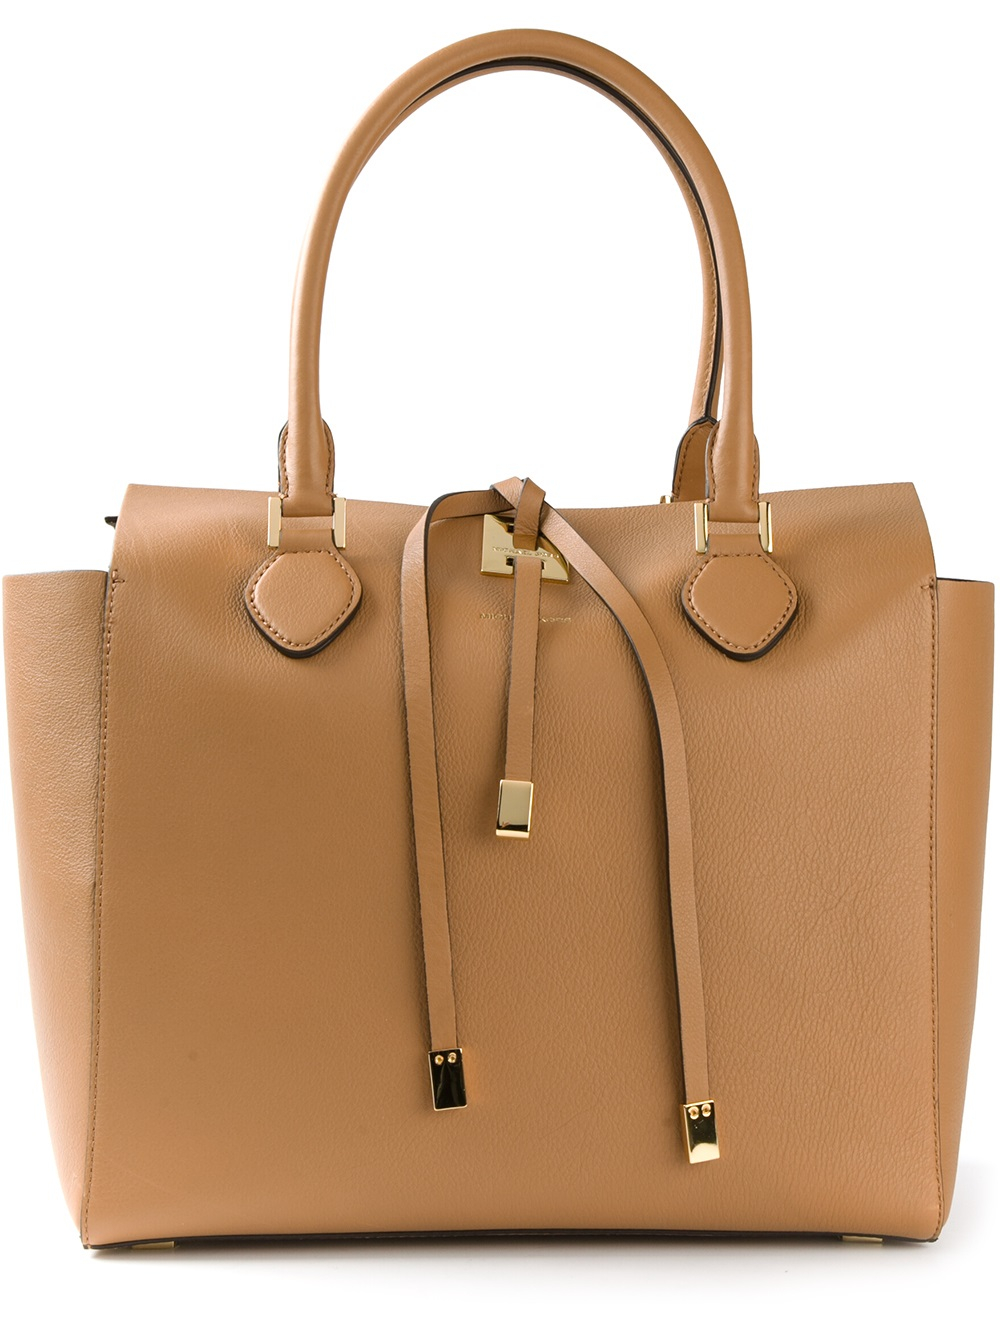 80e9dc050398 Gallery. Previously sold at: Farfetch · Women's Trapeze Bags Women's Michael  By Michael Kors Miranda ...